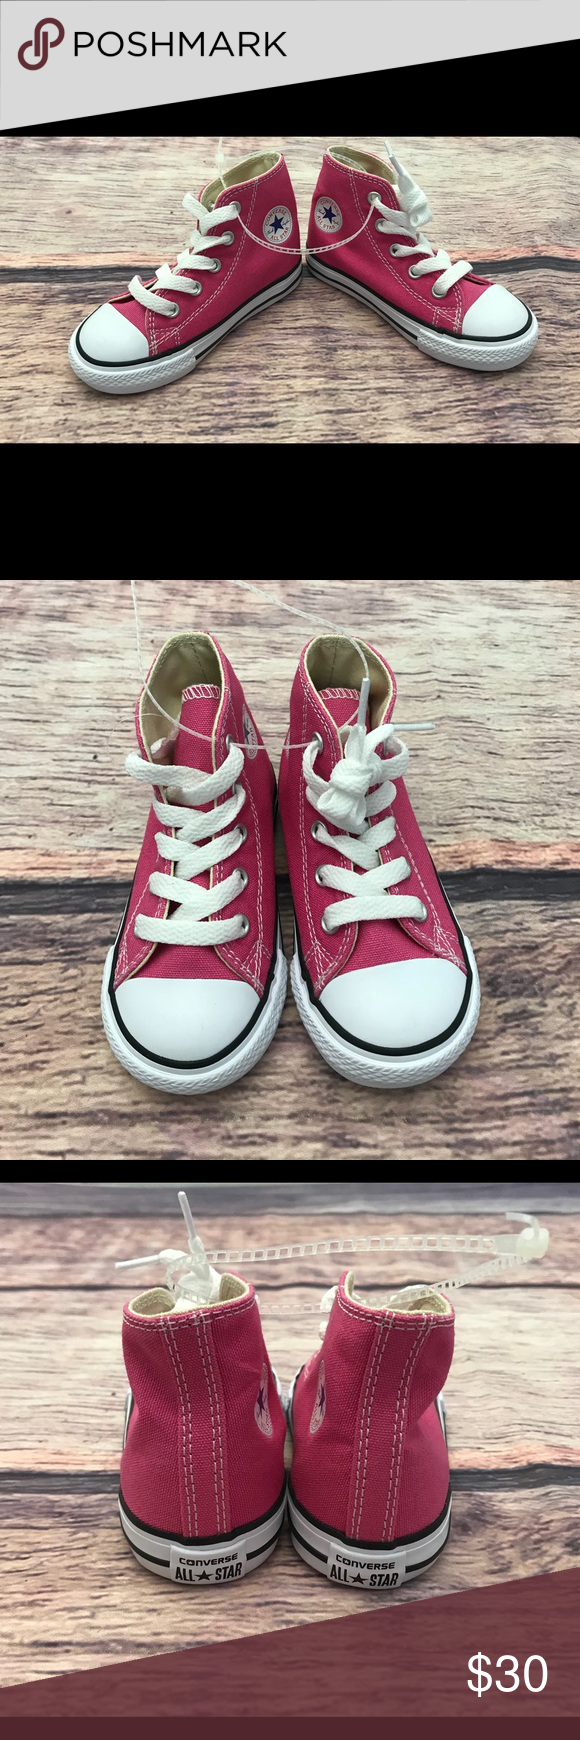 3cff83e412530d Converse all Star Chuck Taylor Toddler Girl Size 7 •New without box •Converse  All